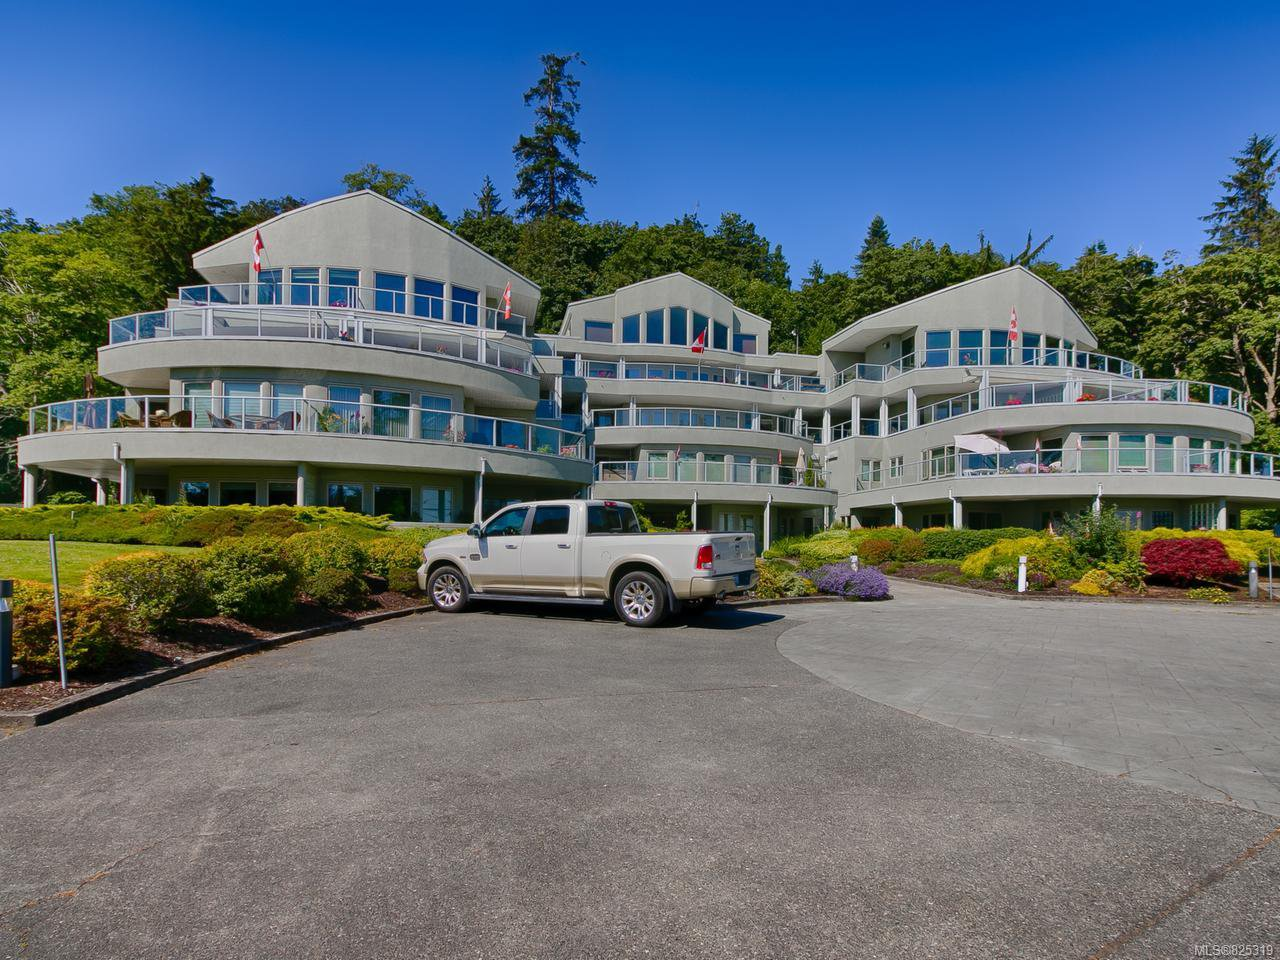 Photo 25: Photos: 403 700 S Island Hwy in CAMPBELL RIVER: CR Campbell River Central Condo for sale (Campbell River)  : MLS®# 825319